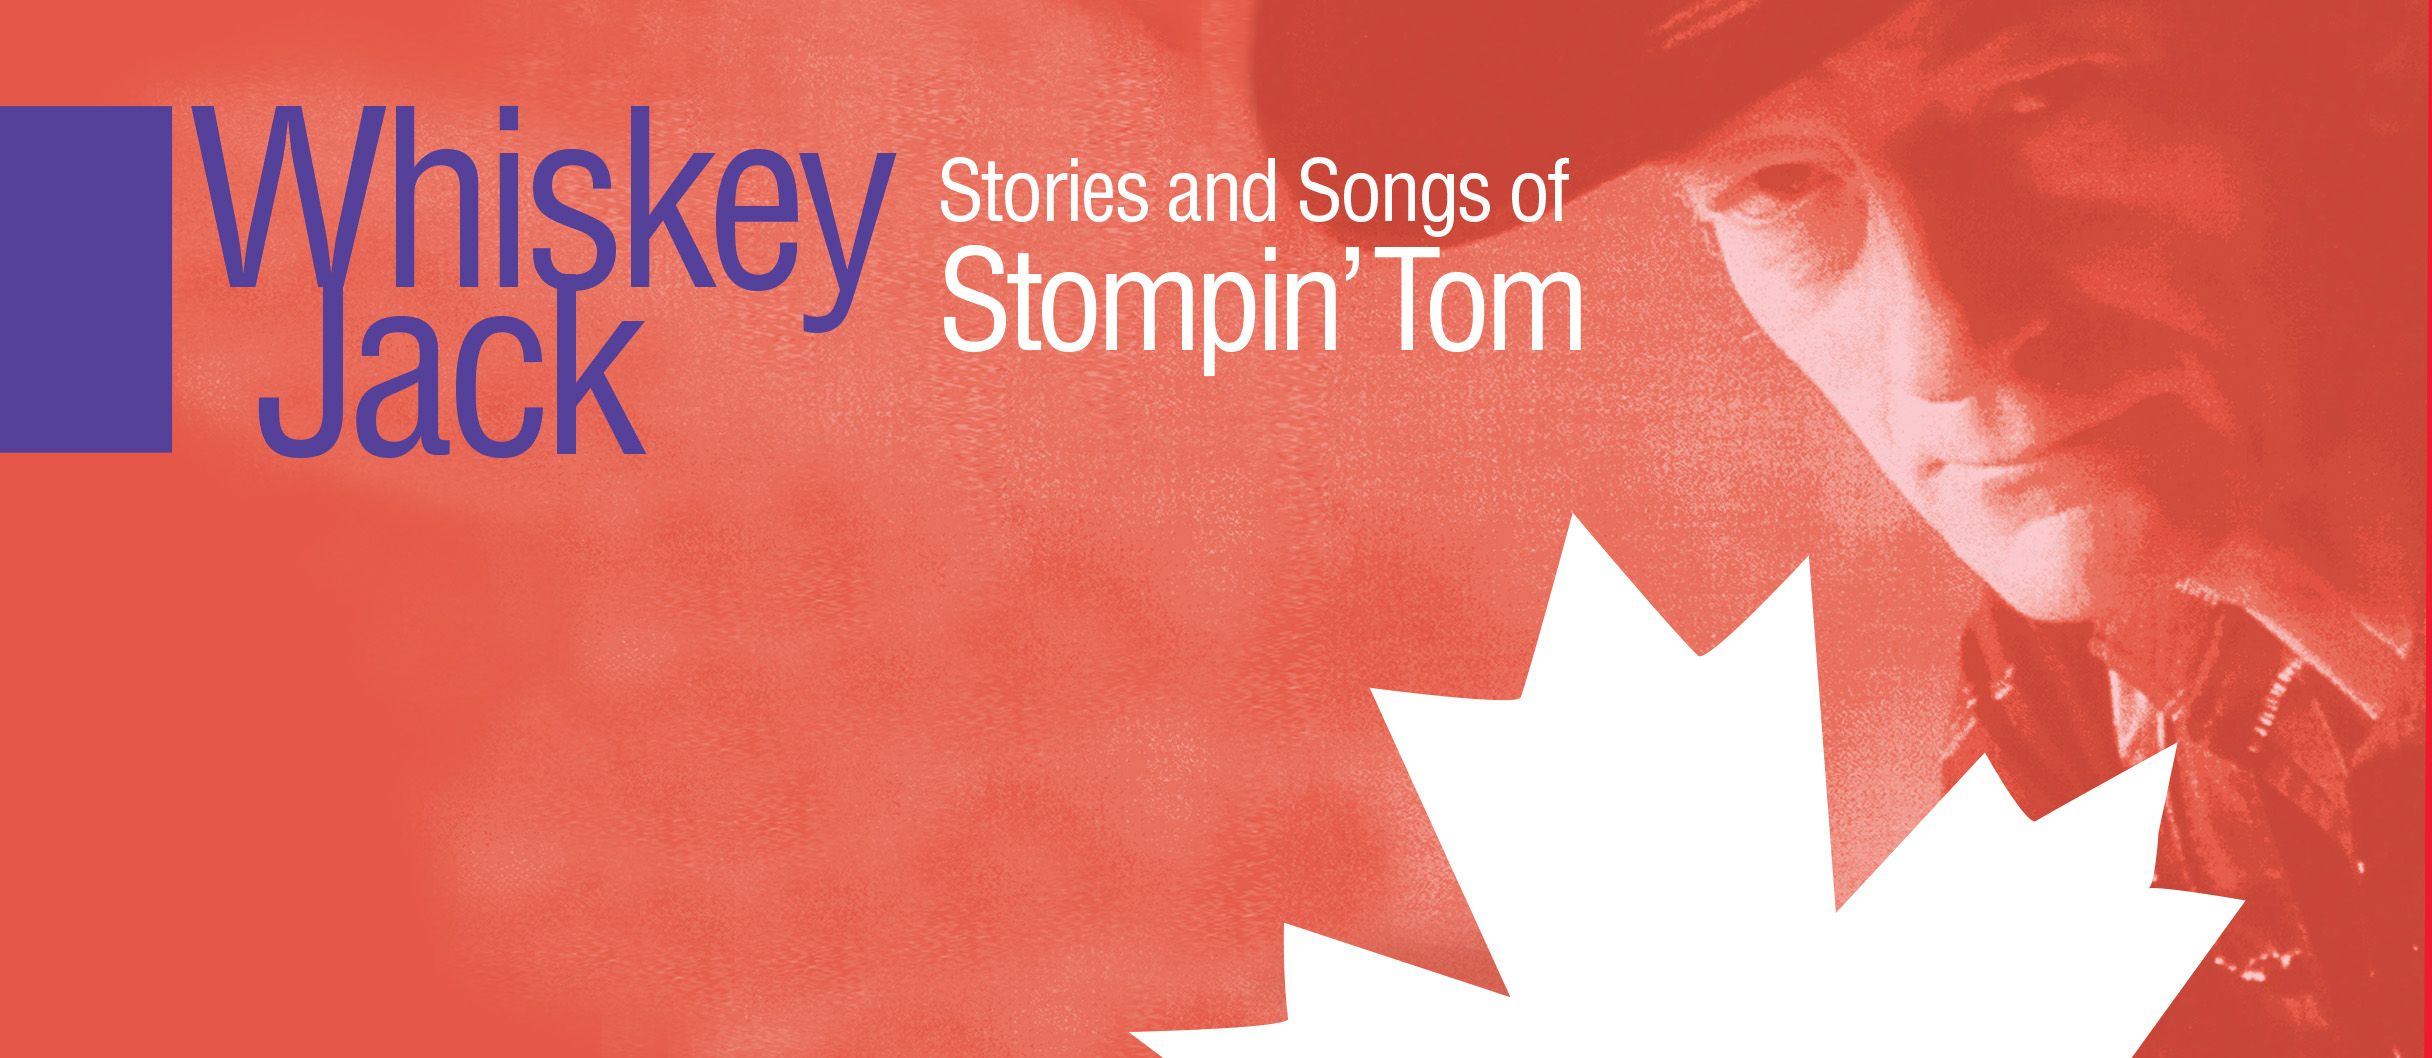 Stories & Songs of Stompin' Tom featuring Whiskey Jack and guests